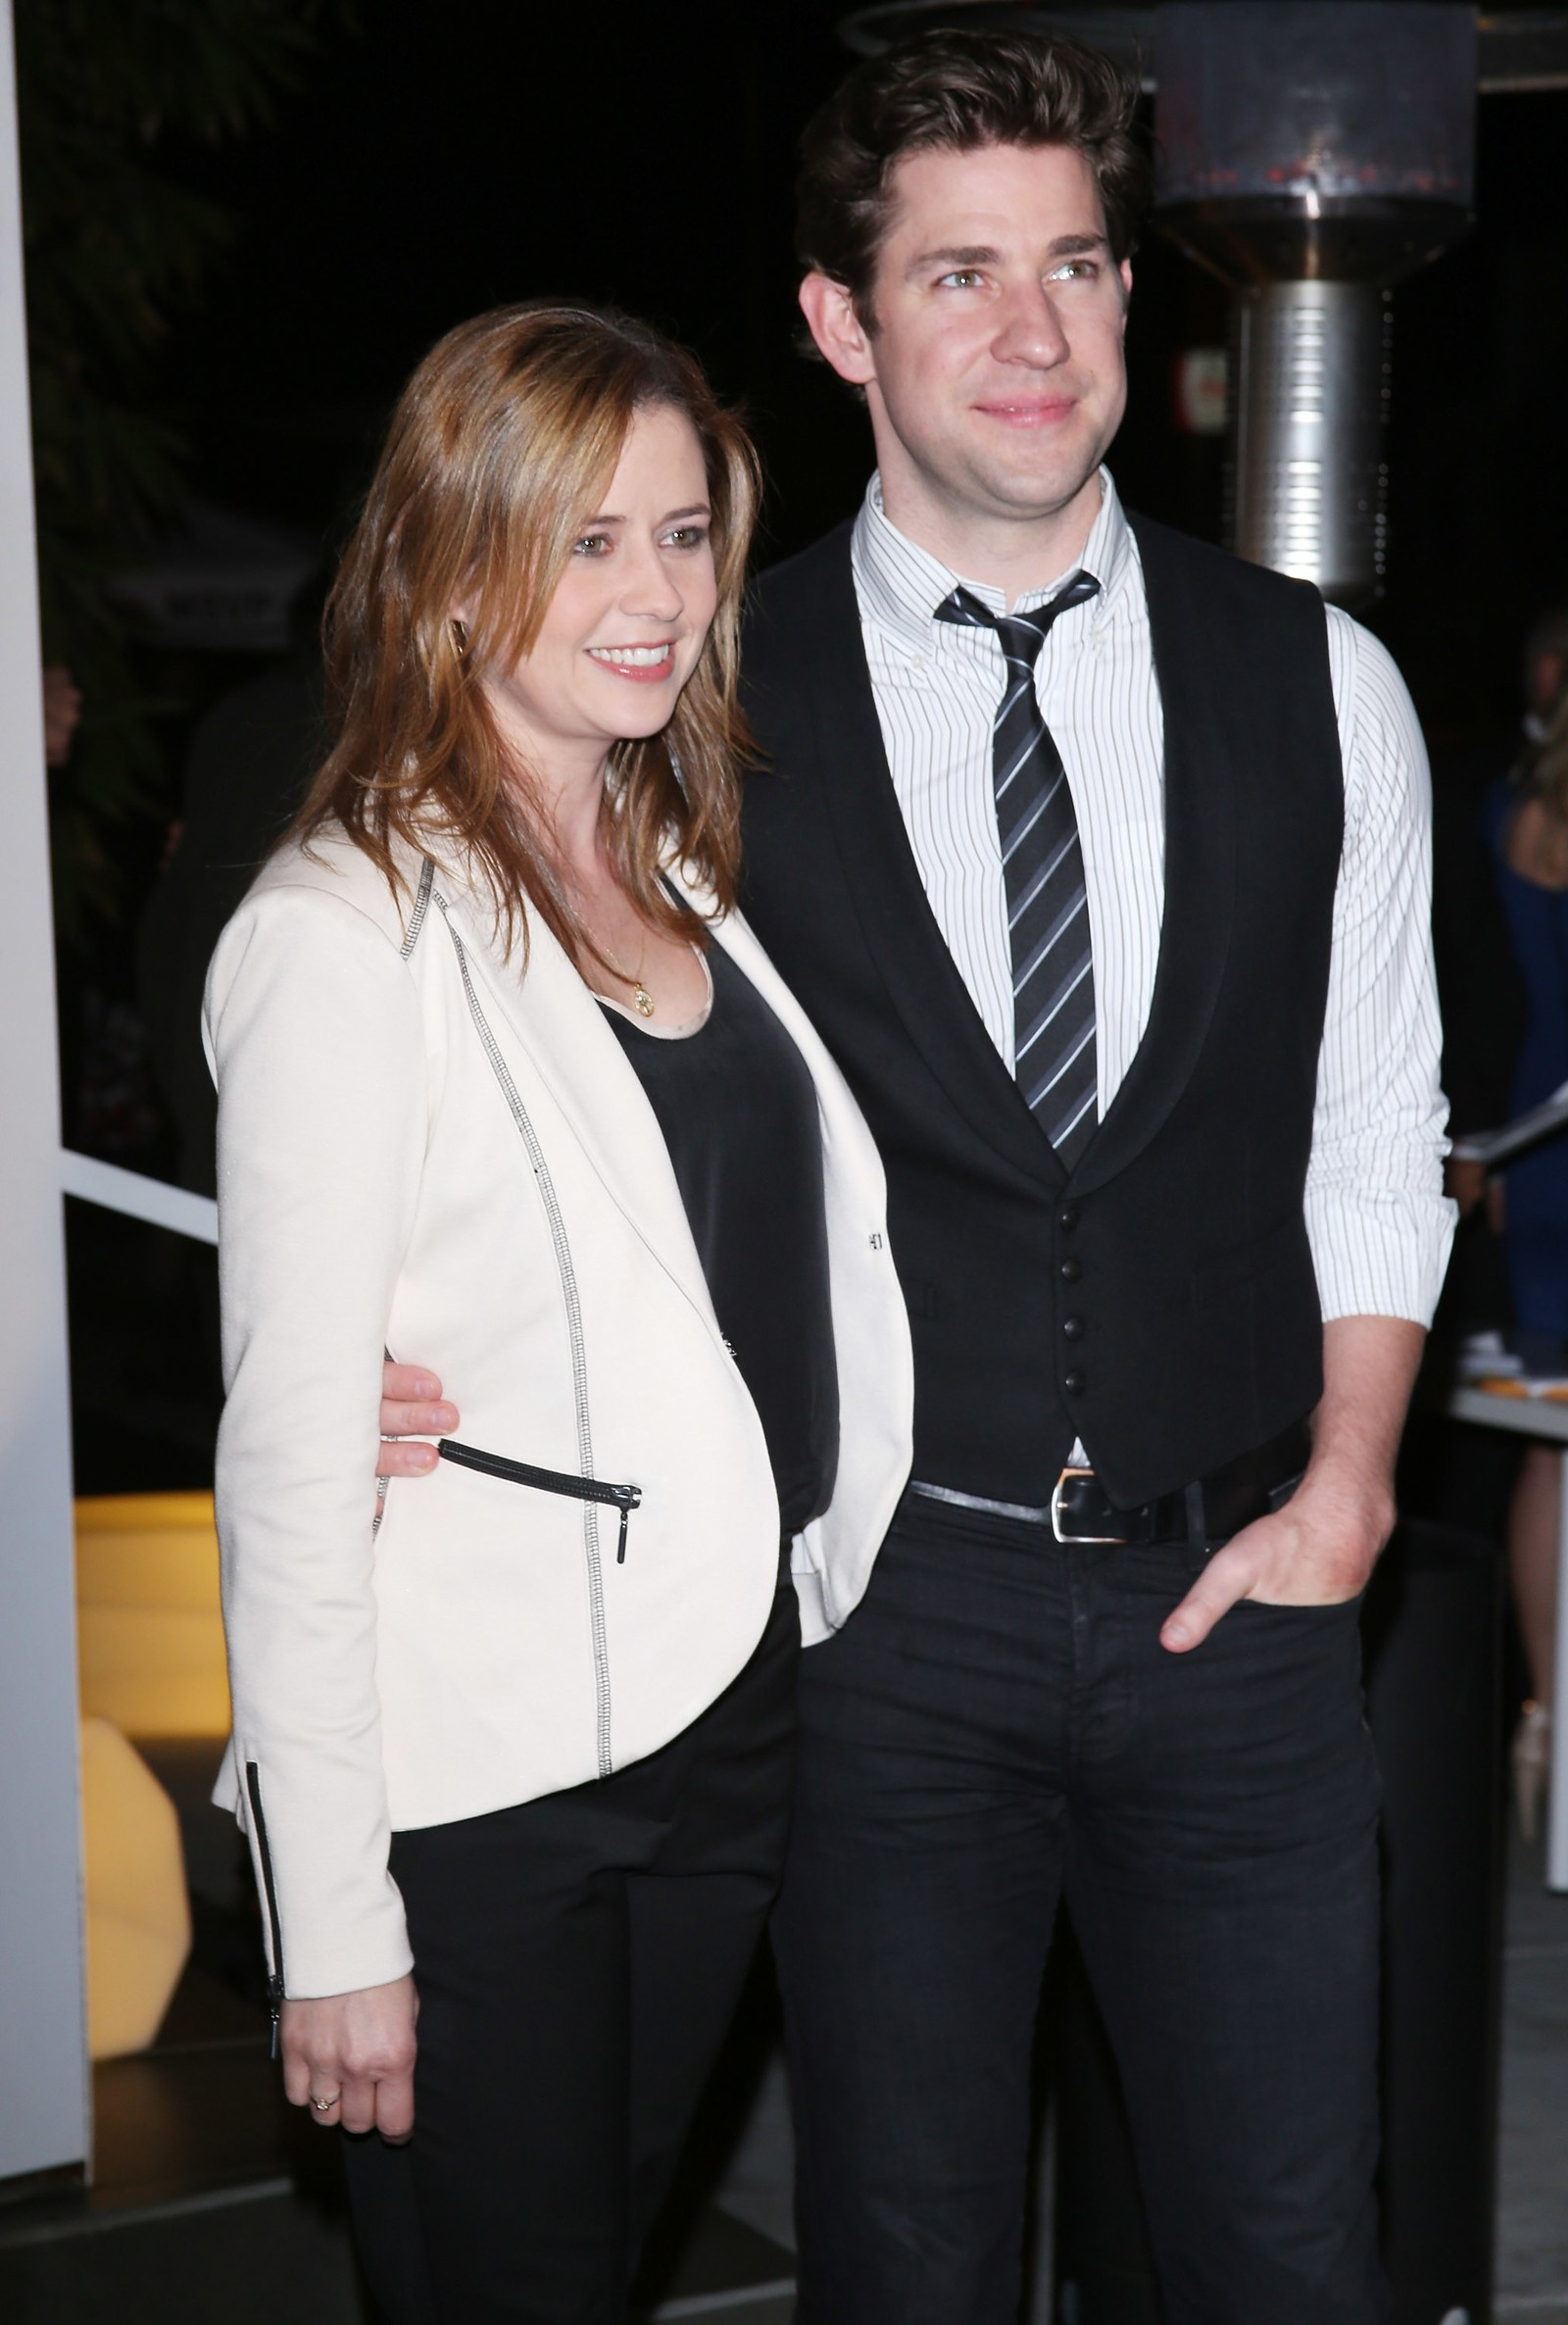 John Krasinski and Jenna Fischer arrive at The Office series finale wrap party in 2013.